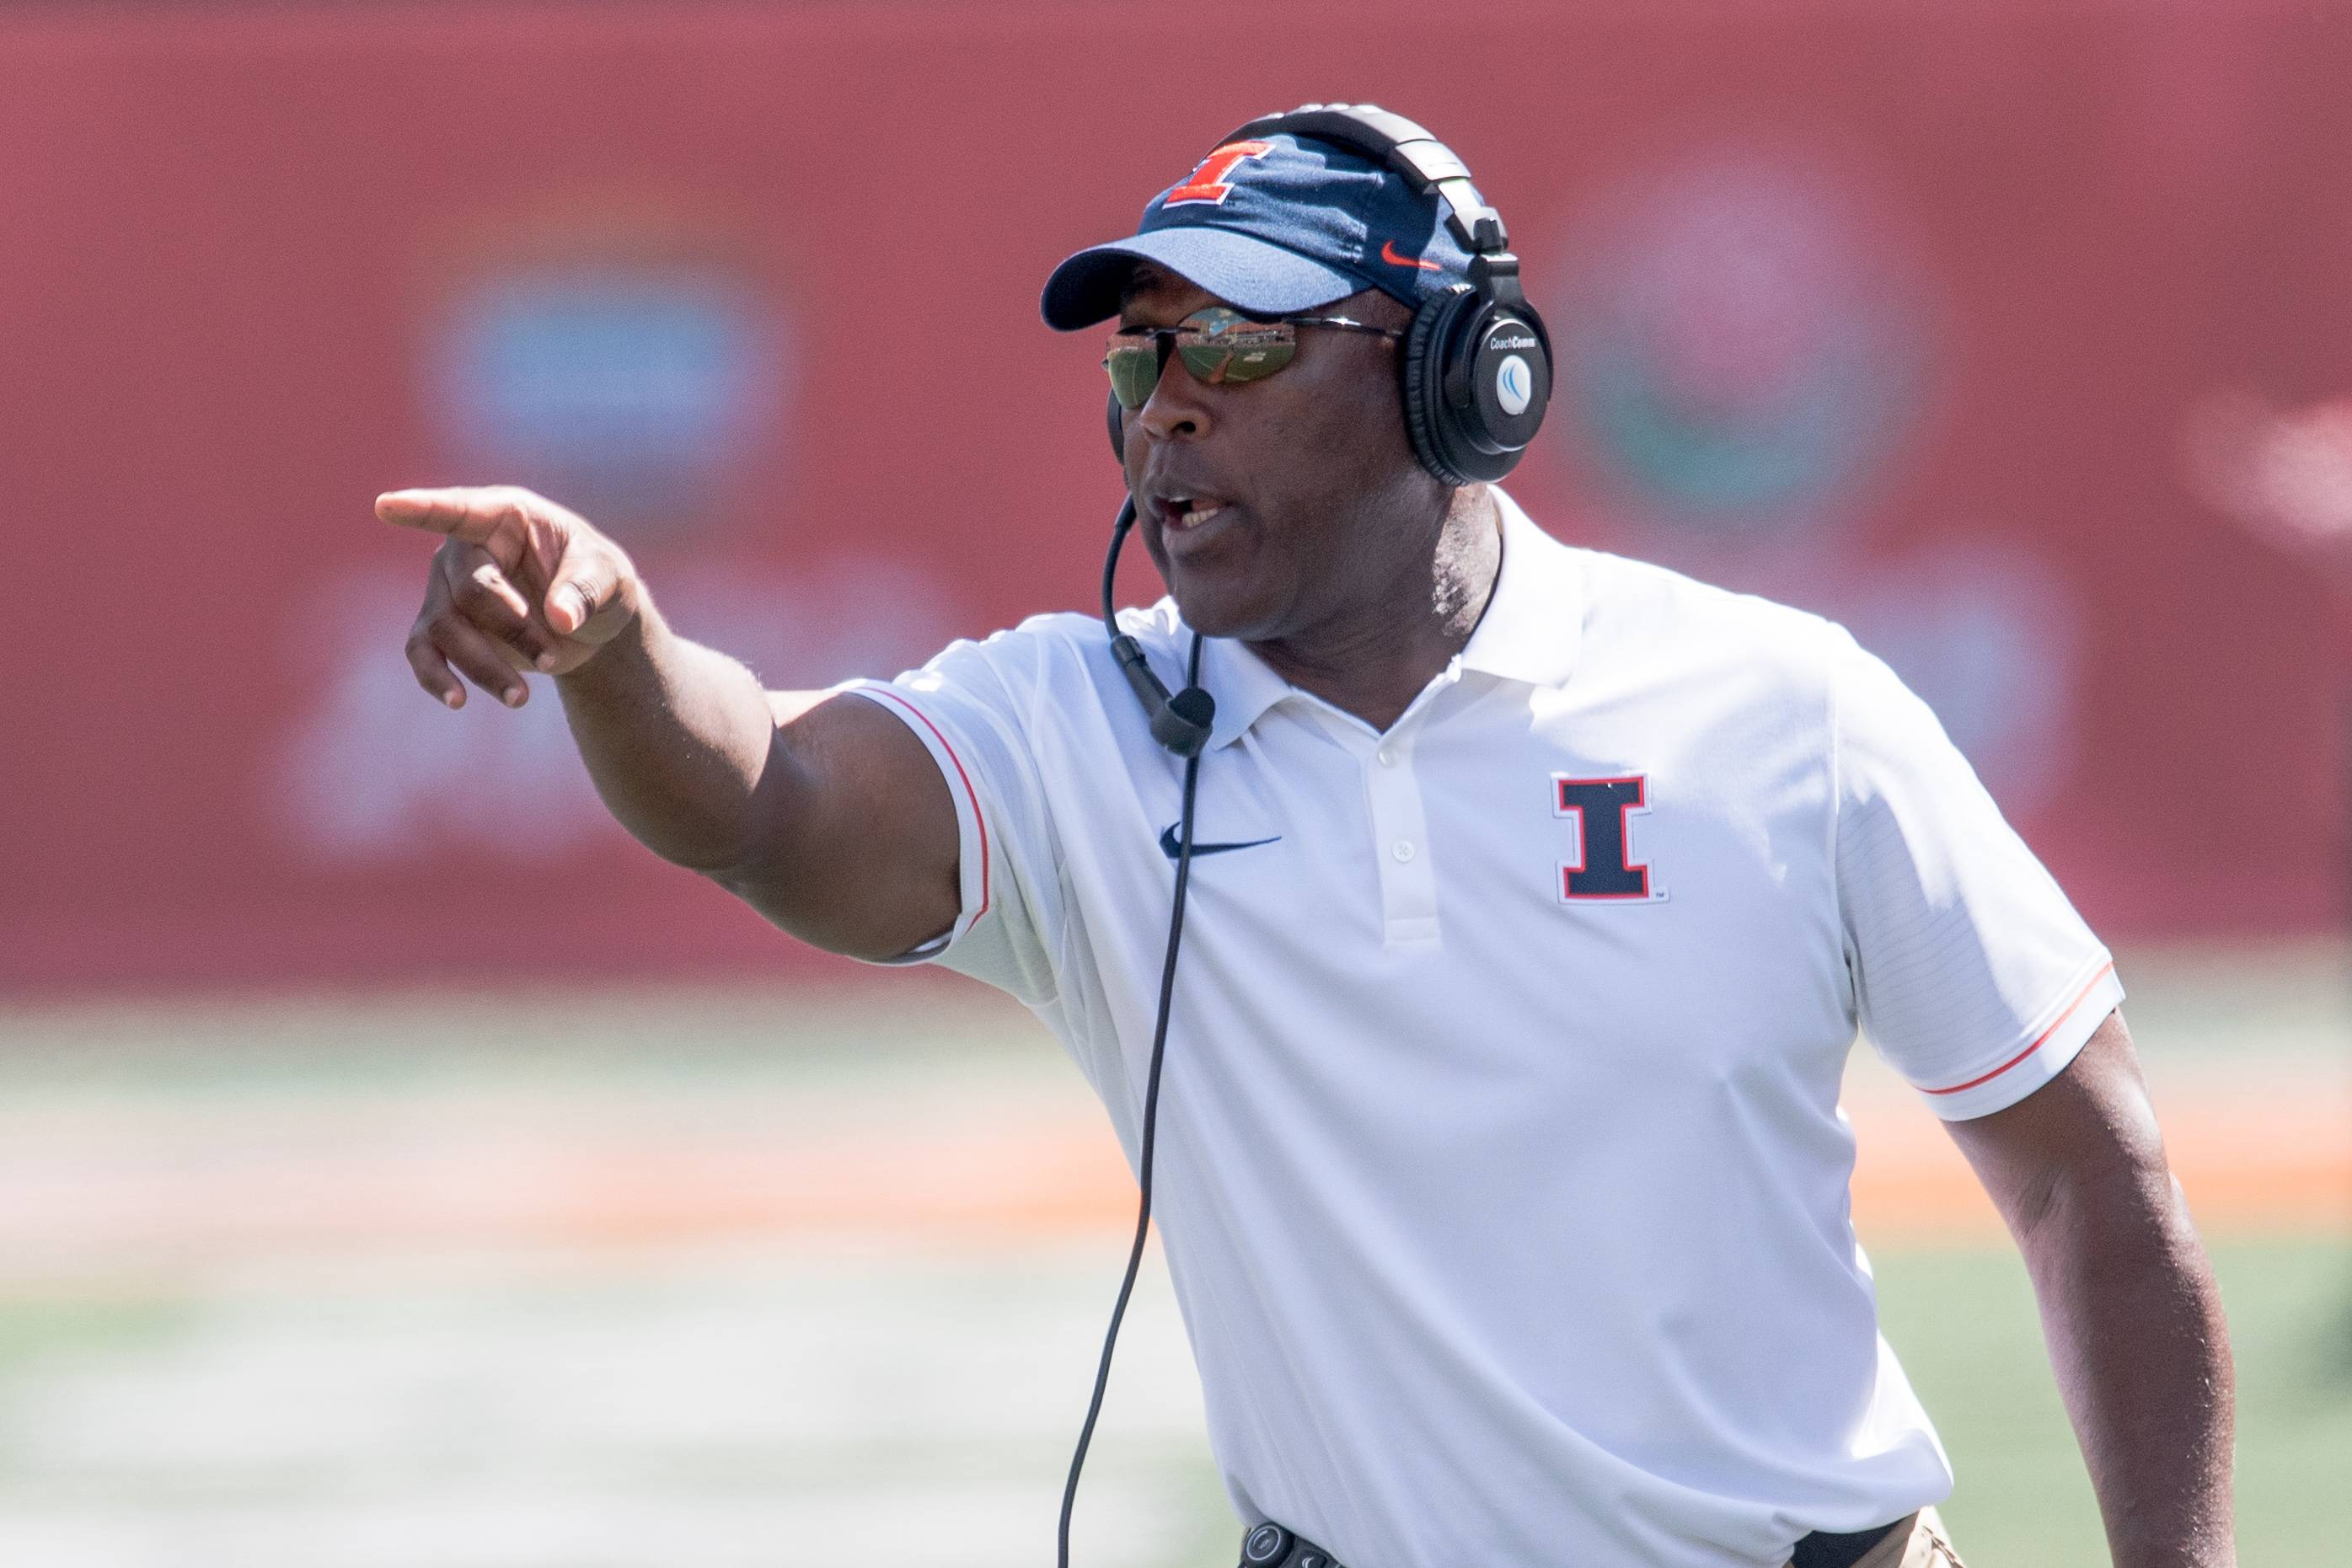 Illinois head coach Lovie Smith shouts during the first quarter of an NCAA college football game against Murray State Saturday, Sept. 3, 2016 at Memorial Stadium in Champaign, Ill.